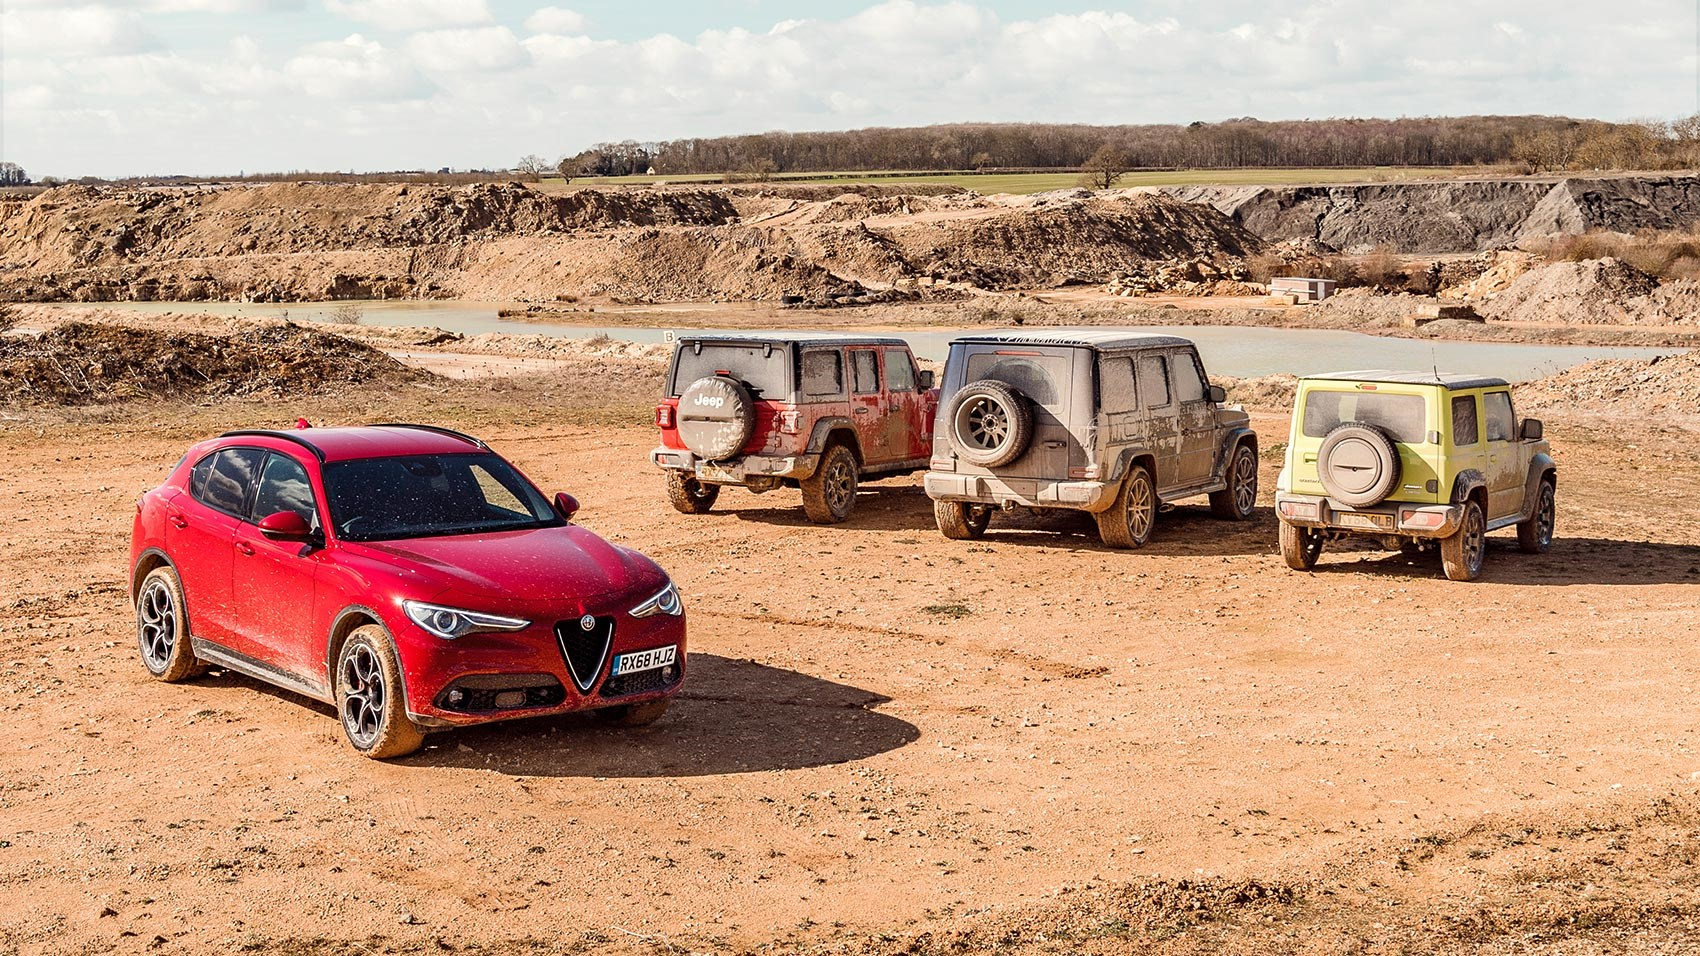 Alfa Romeo Stelvio meets a Mercedes G-Class, Suzuki Jimmy and Jeep Cherokee